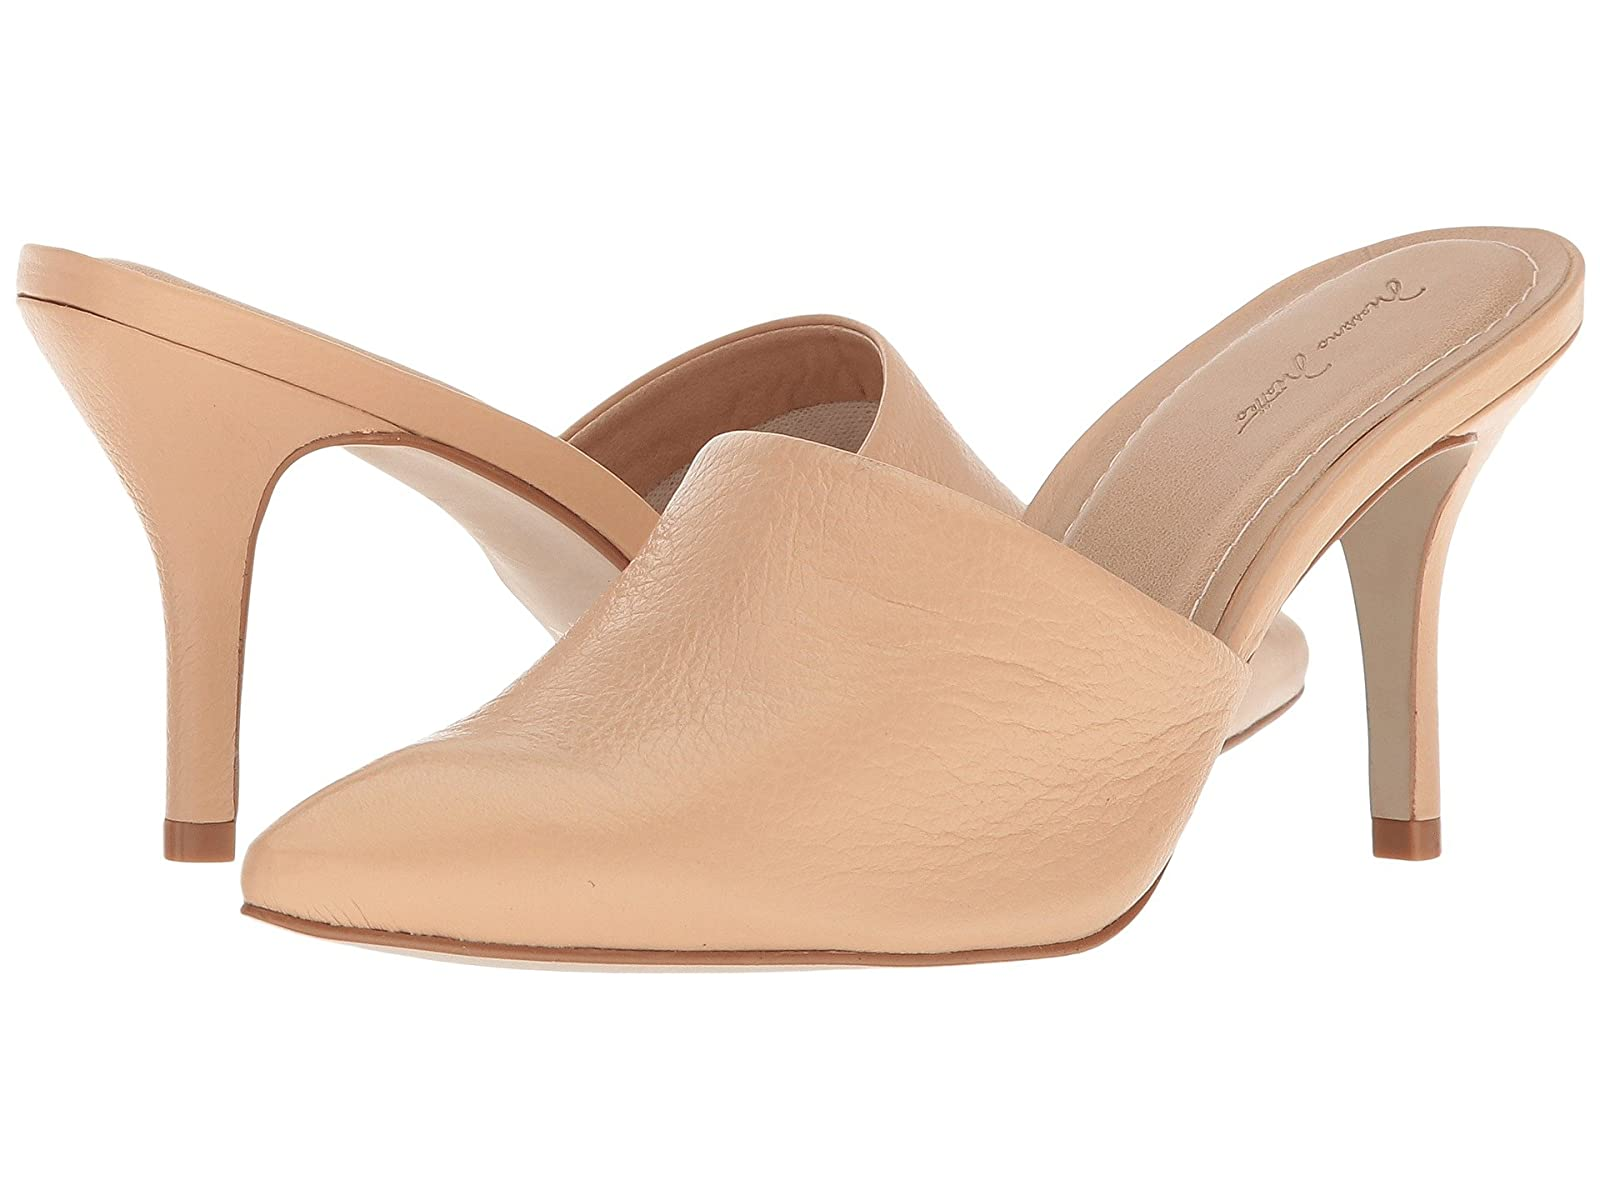 Massimo Matteo PearlAtmospheric grades have affordable shoes